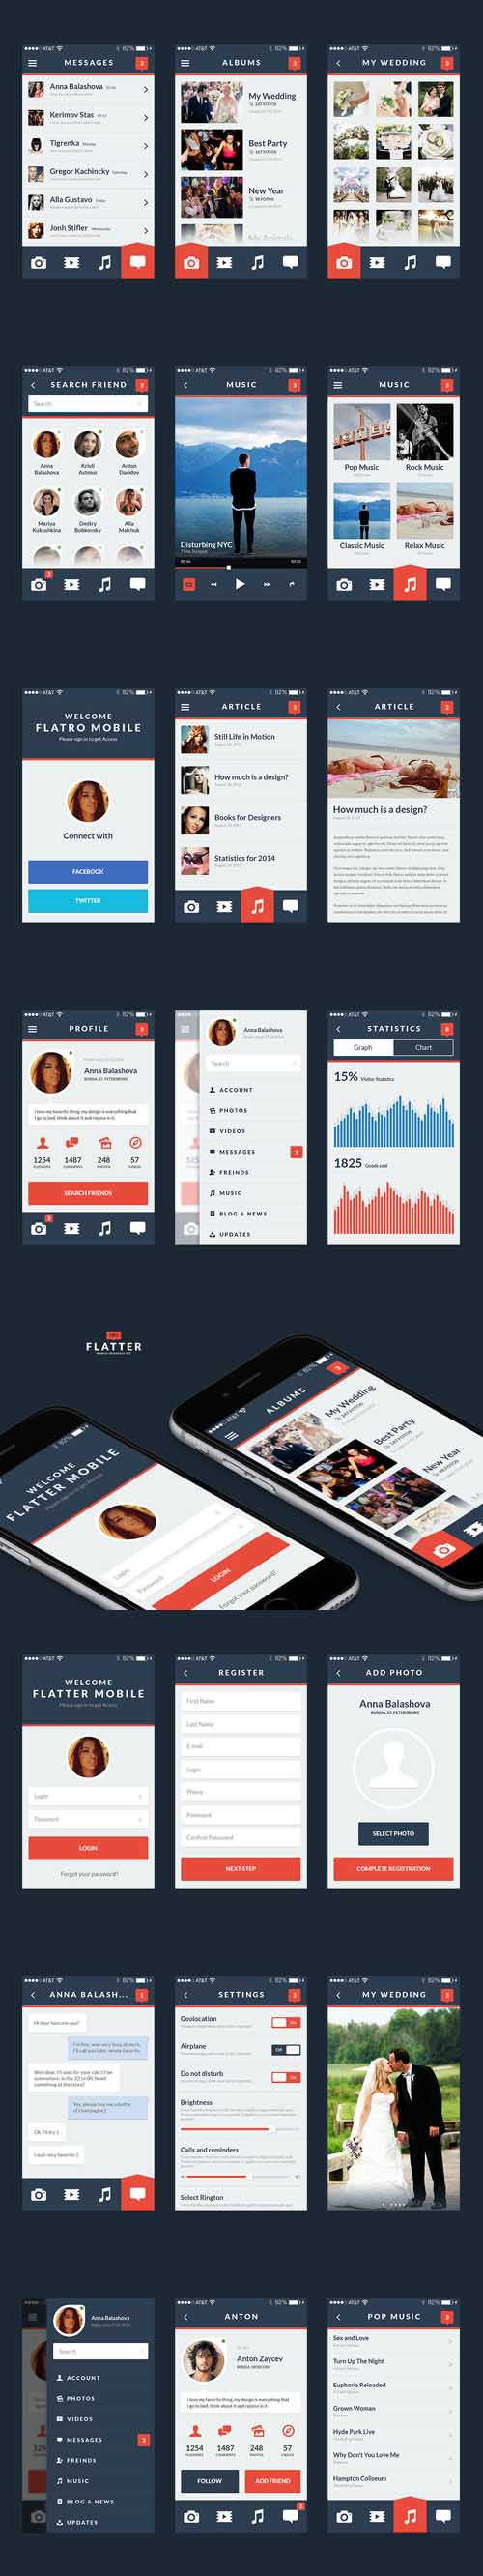 Flatter Mobile UI Kit